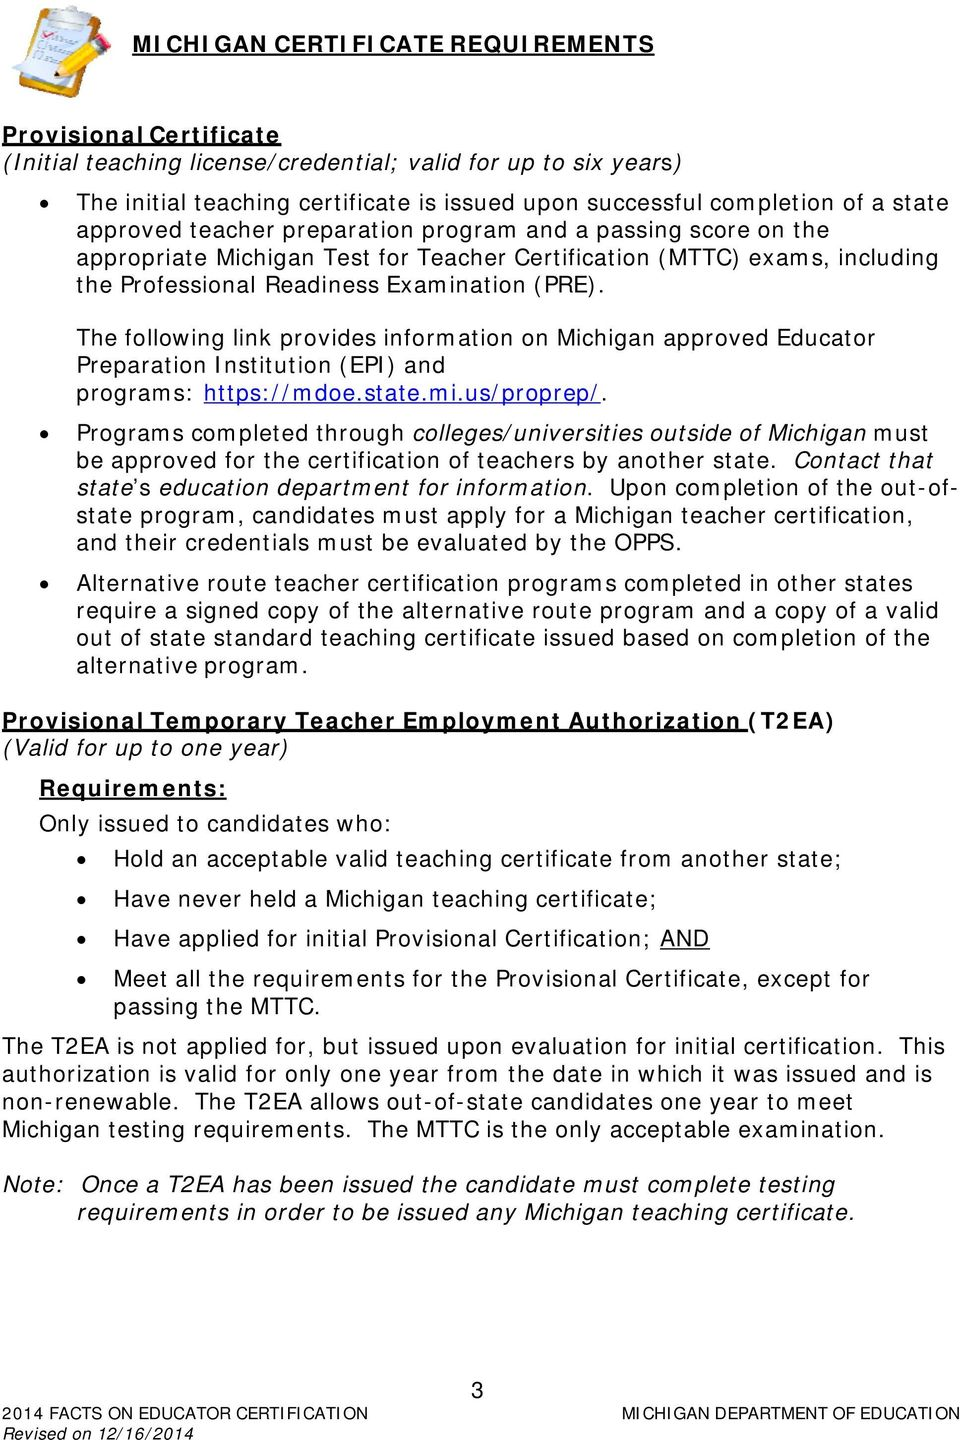 The following link provides information on Michigan approved Educator Preparation Institution (EPI) and programs: https://mdoe.state.mi.us/proprep/.